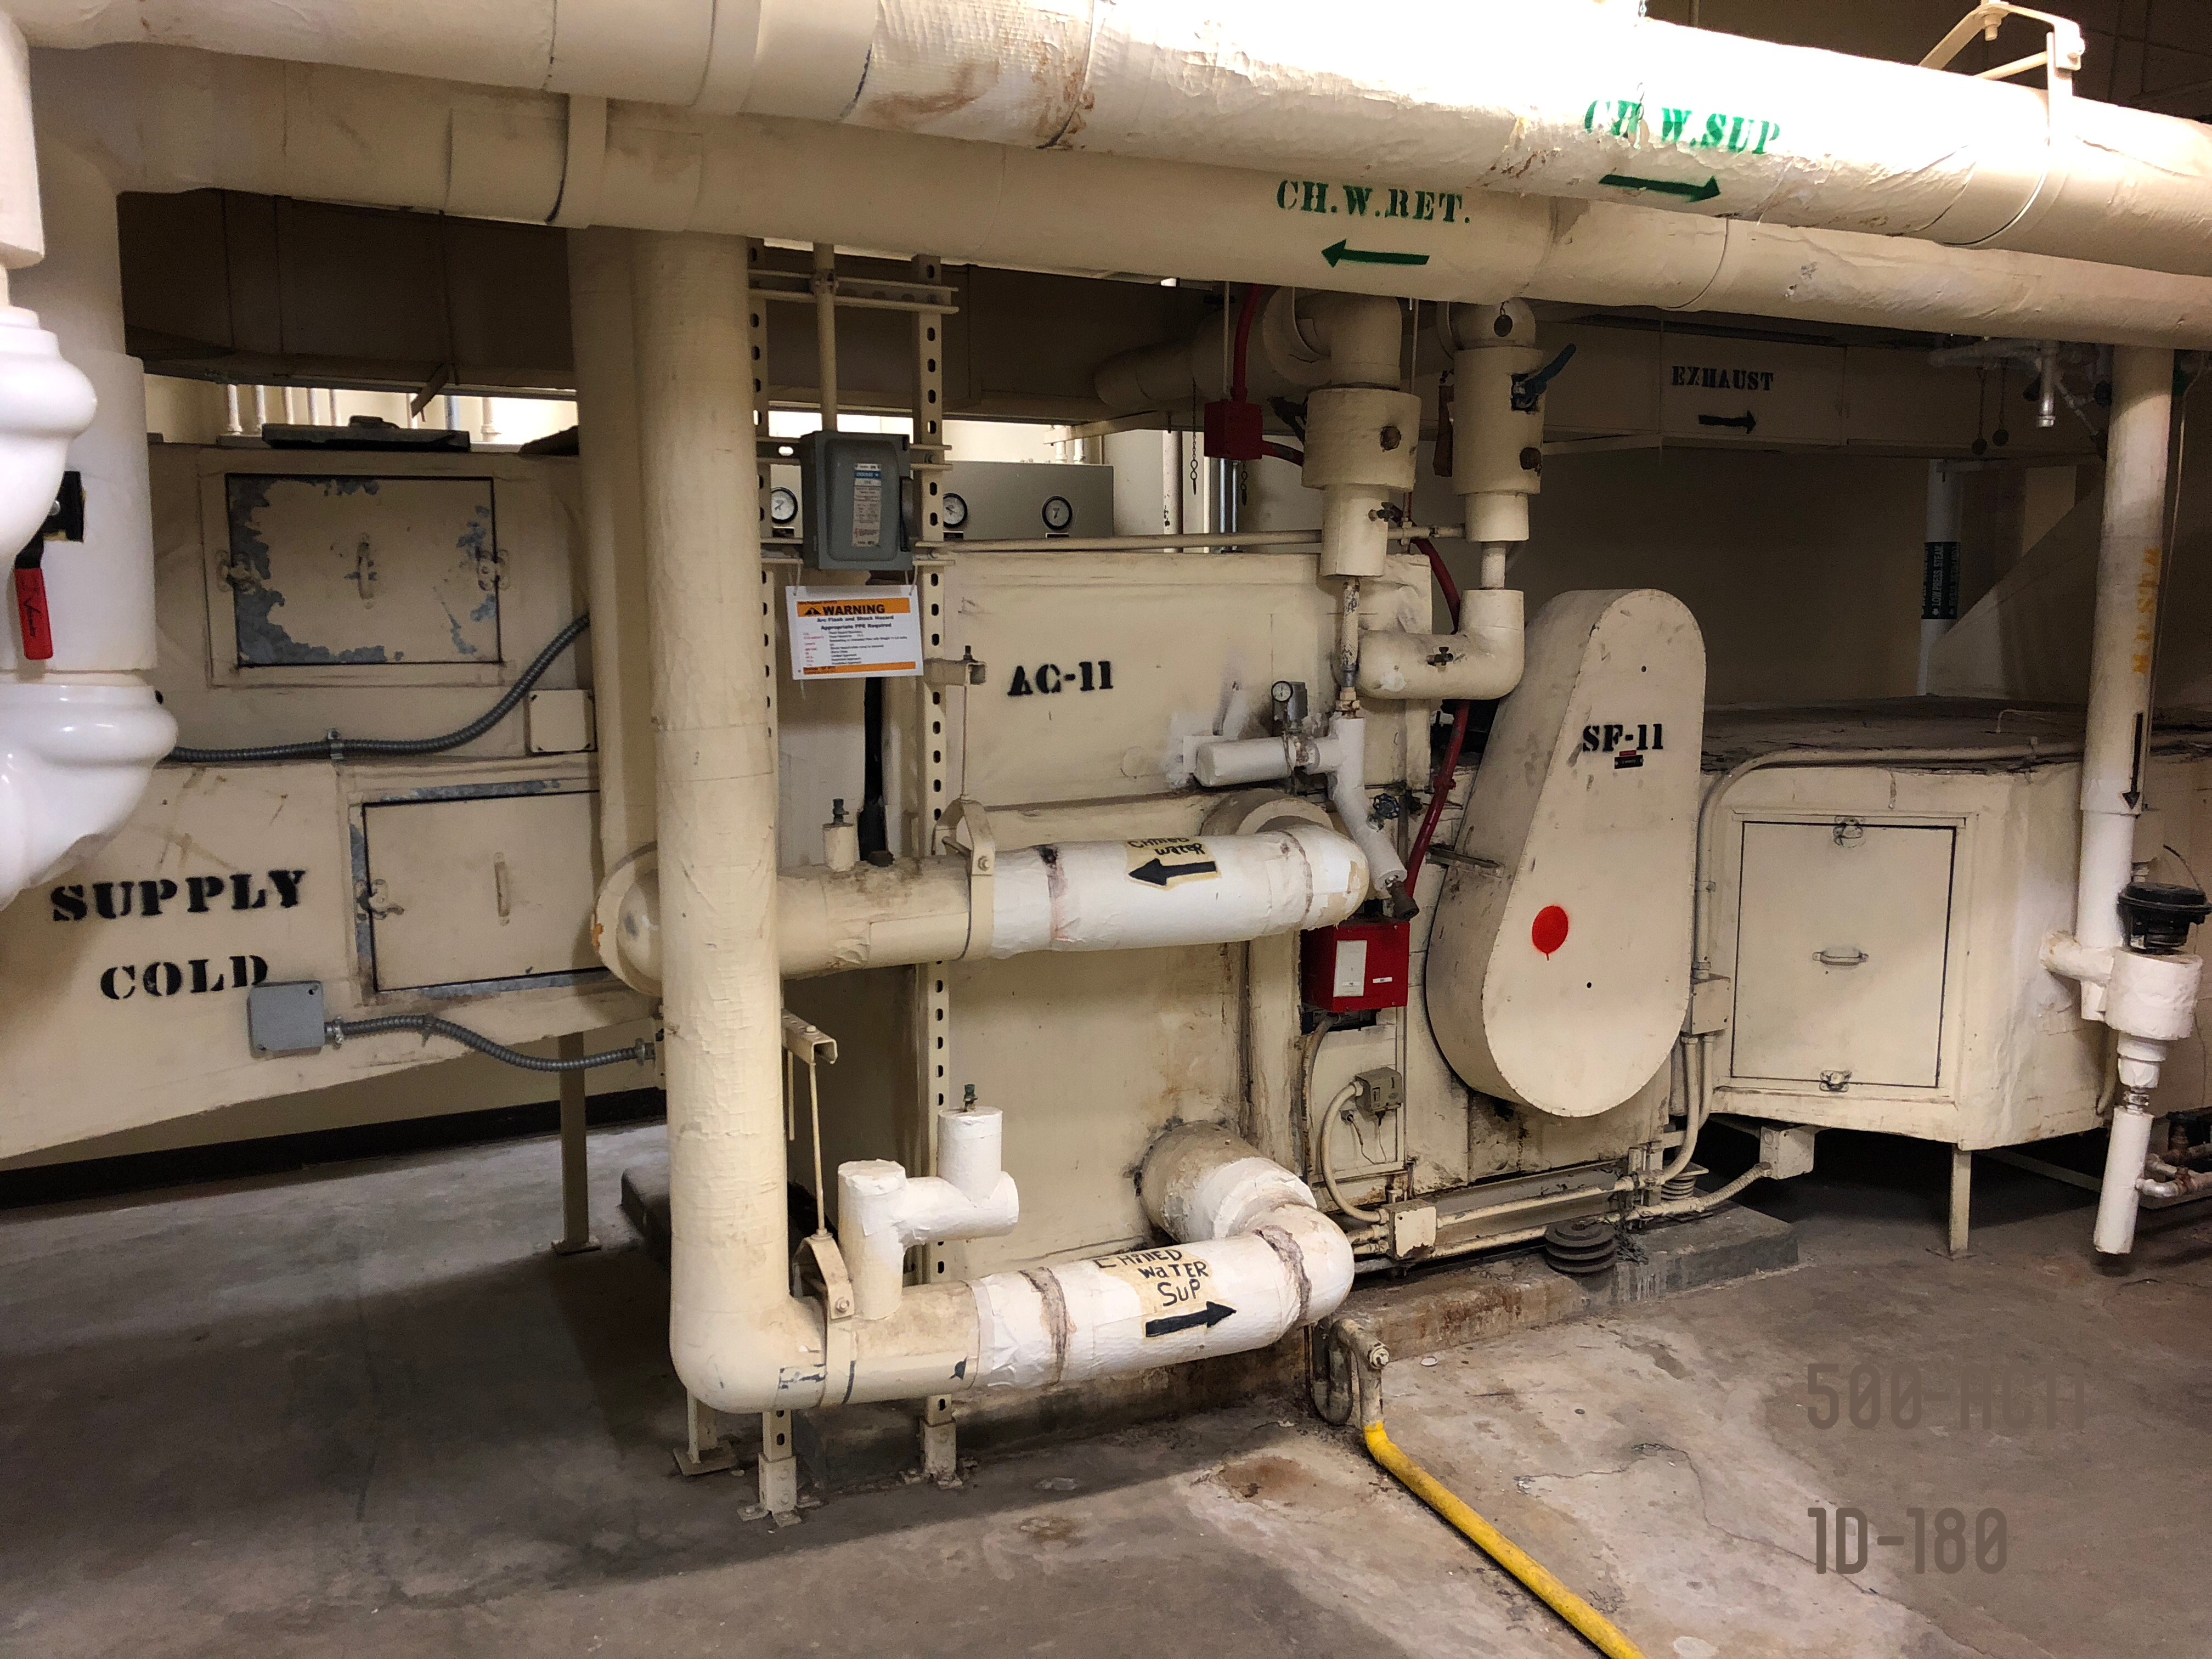 Existing AHU is poor condition